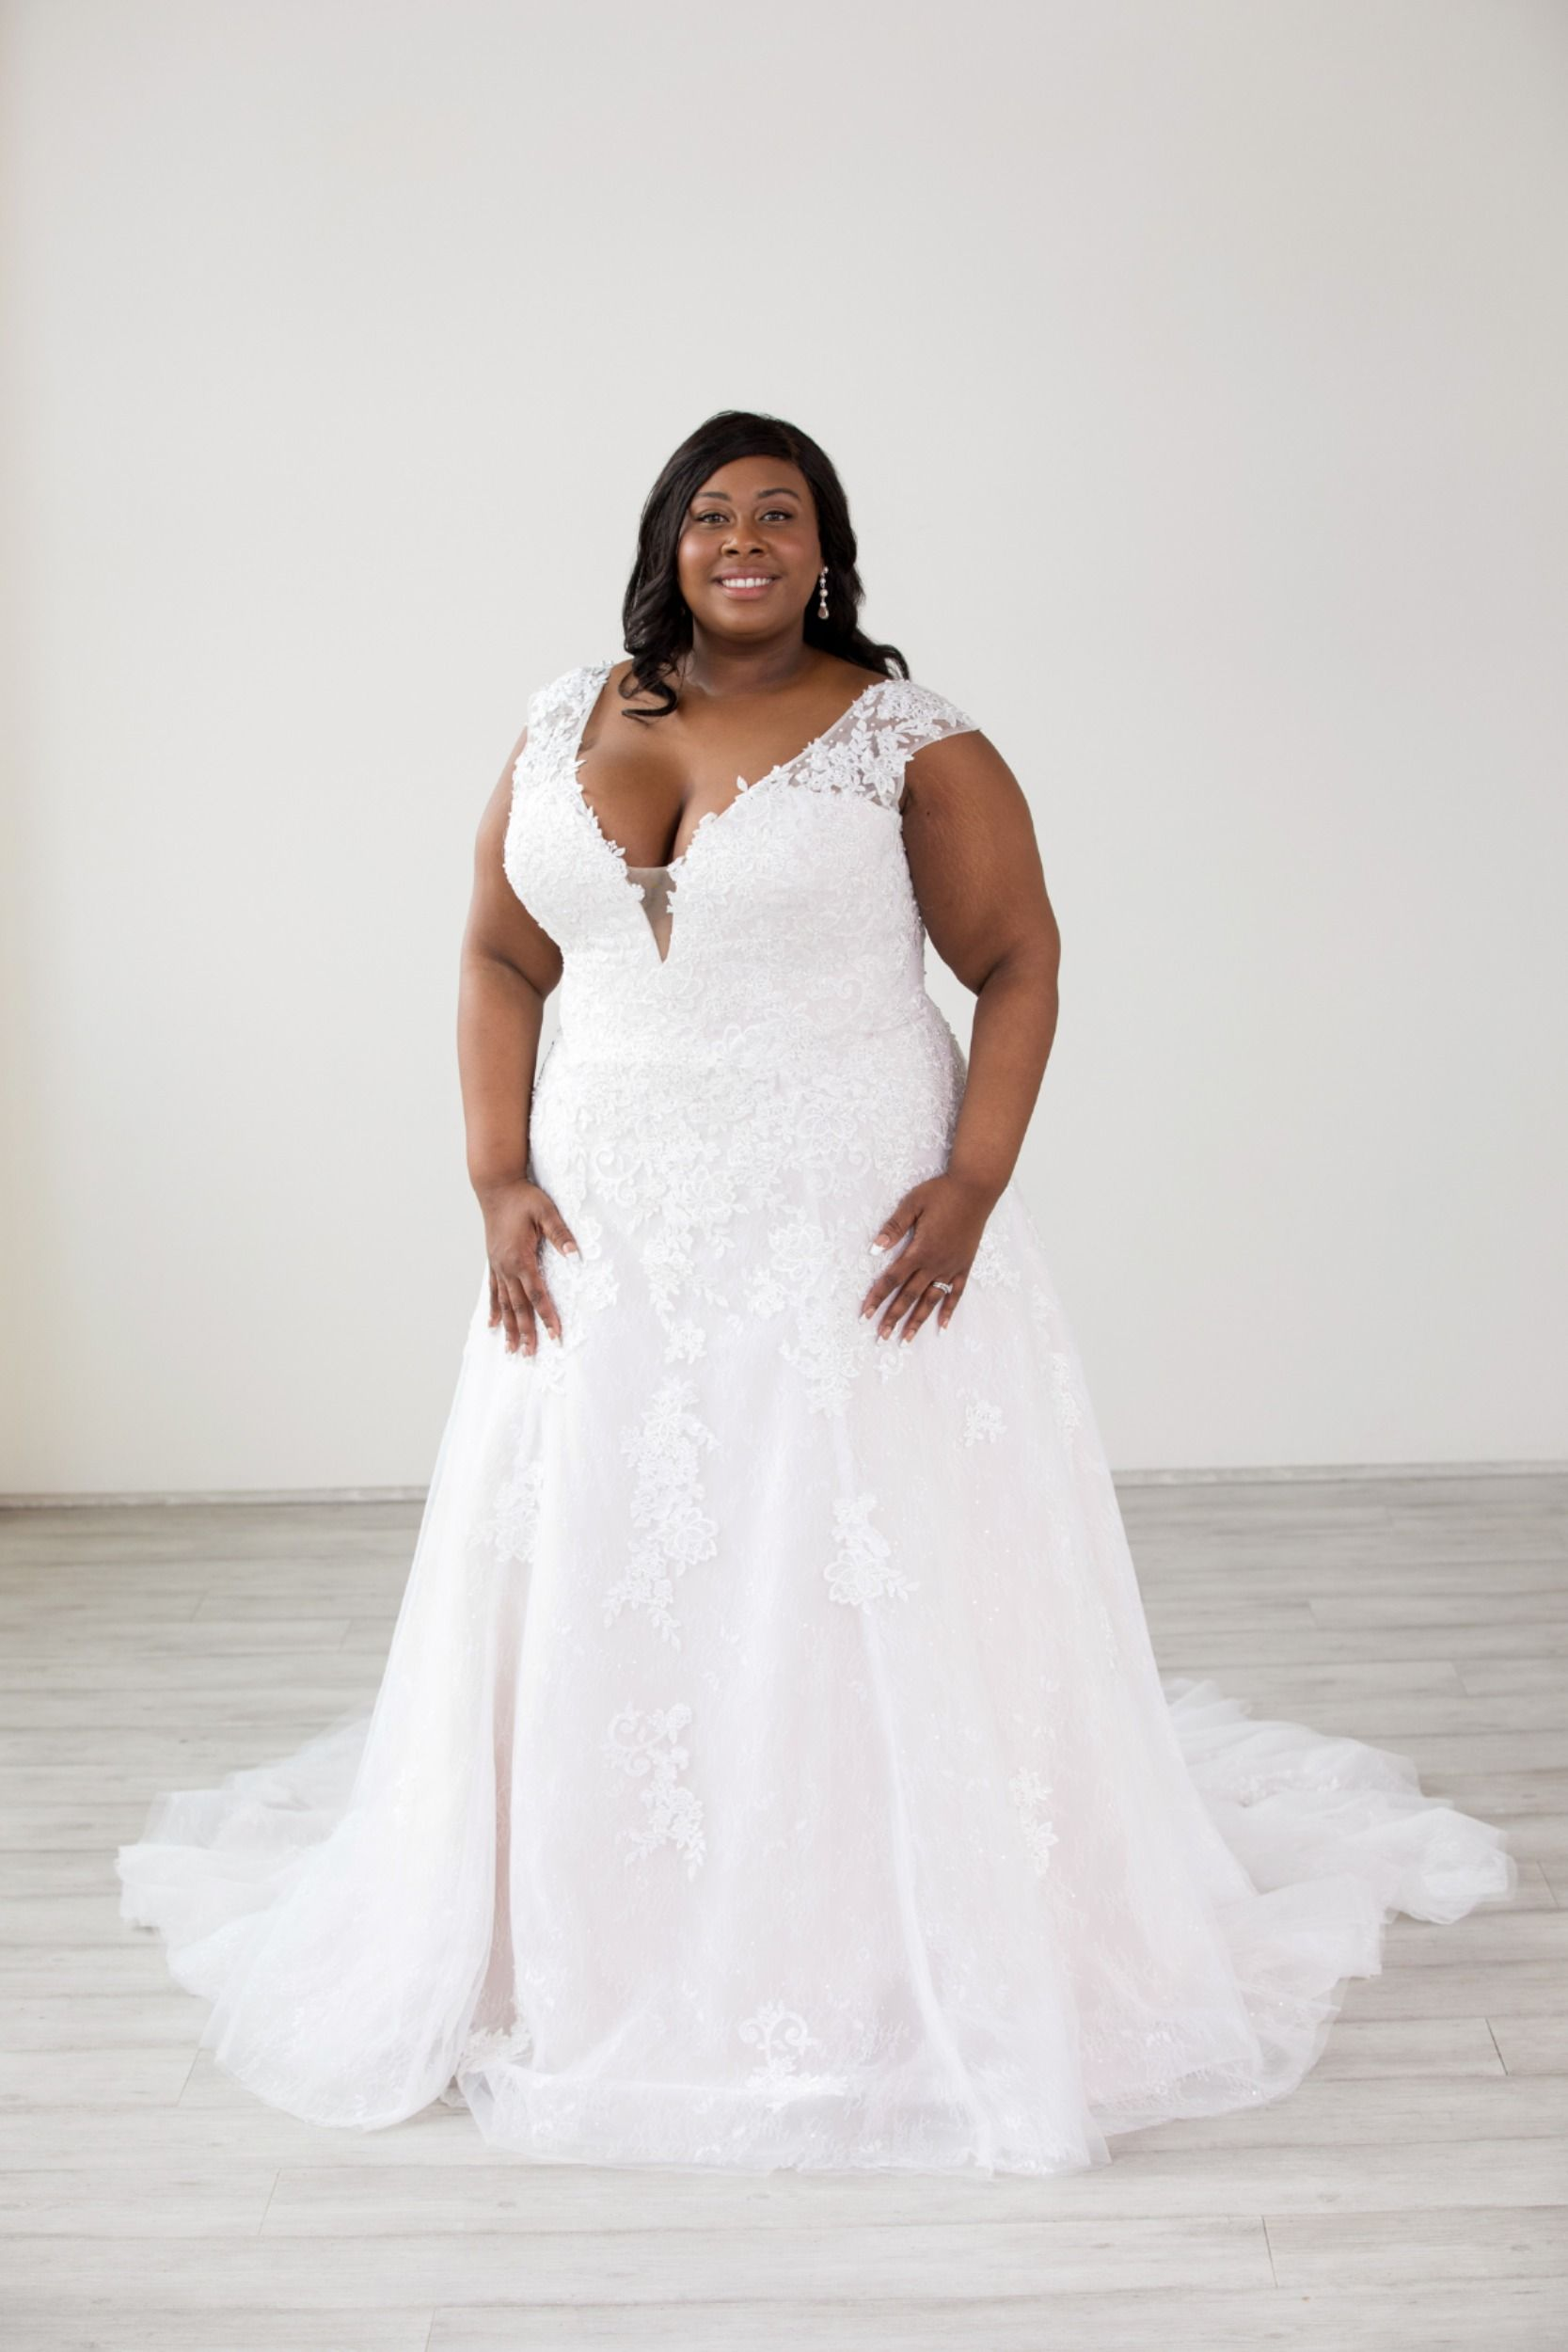 Lace A Line Plus Size Wedding Gown With Corset Back In 2020 Wedding Dress Accessories Plus Size Wedding Gowns Wedding Gowns